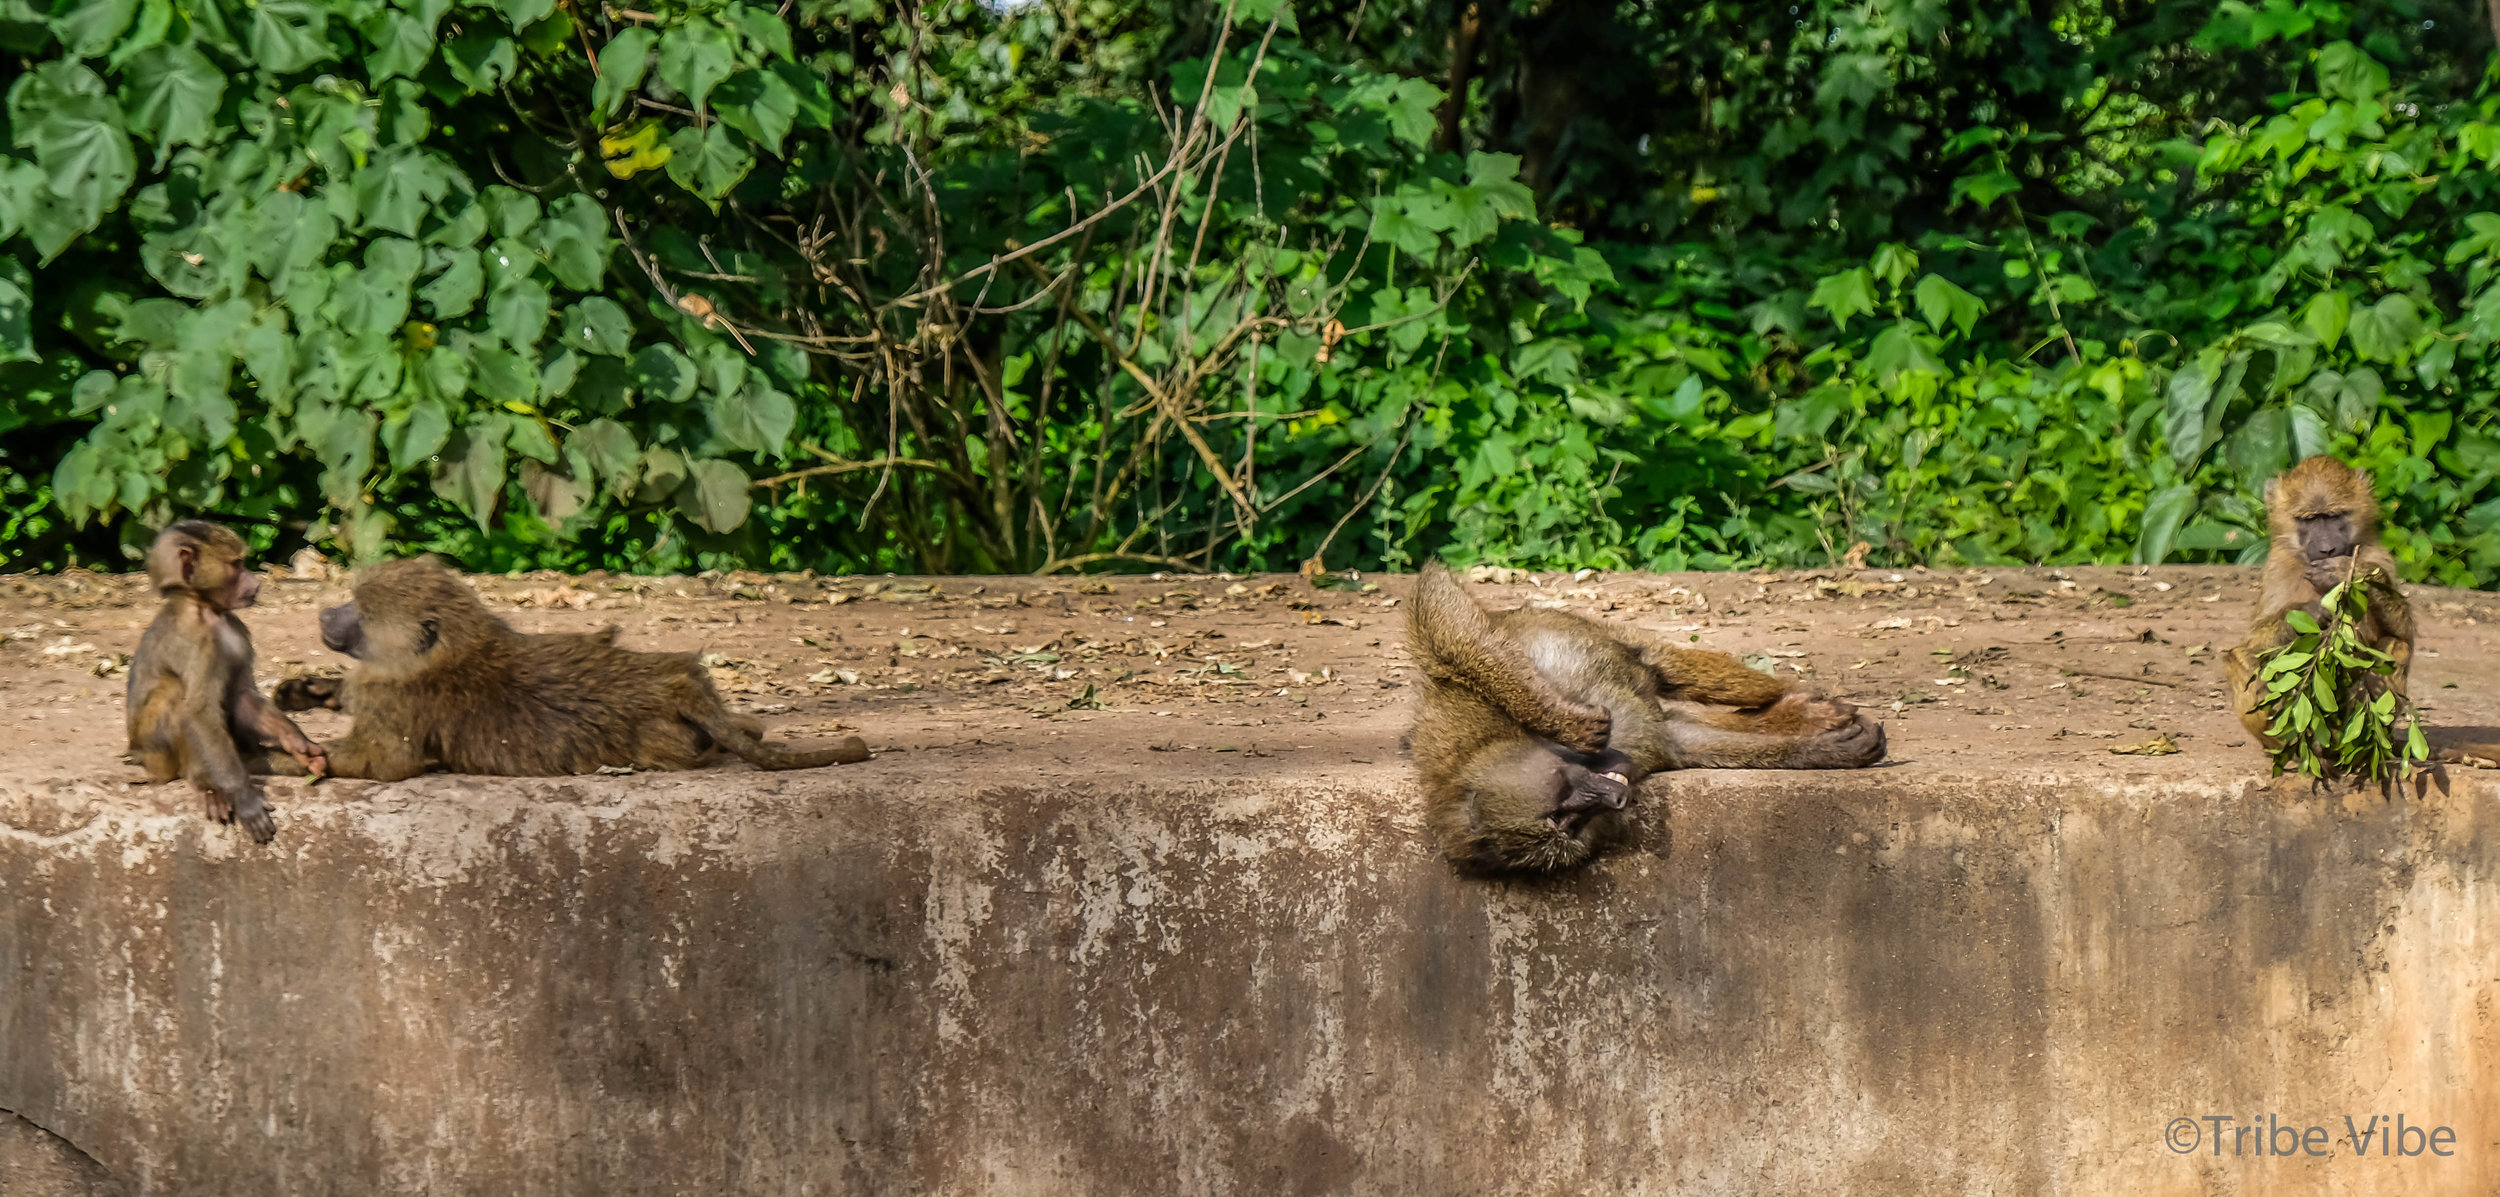 Baboons being lazy by the side of the road in the Ngorongoro Crater.